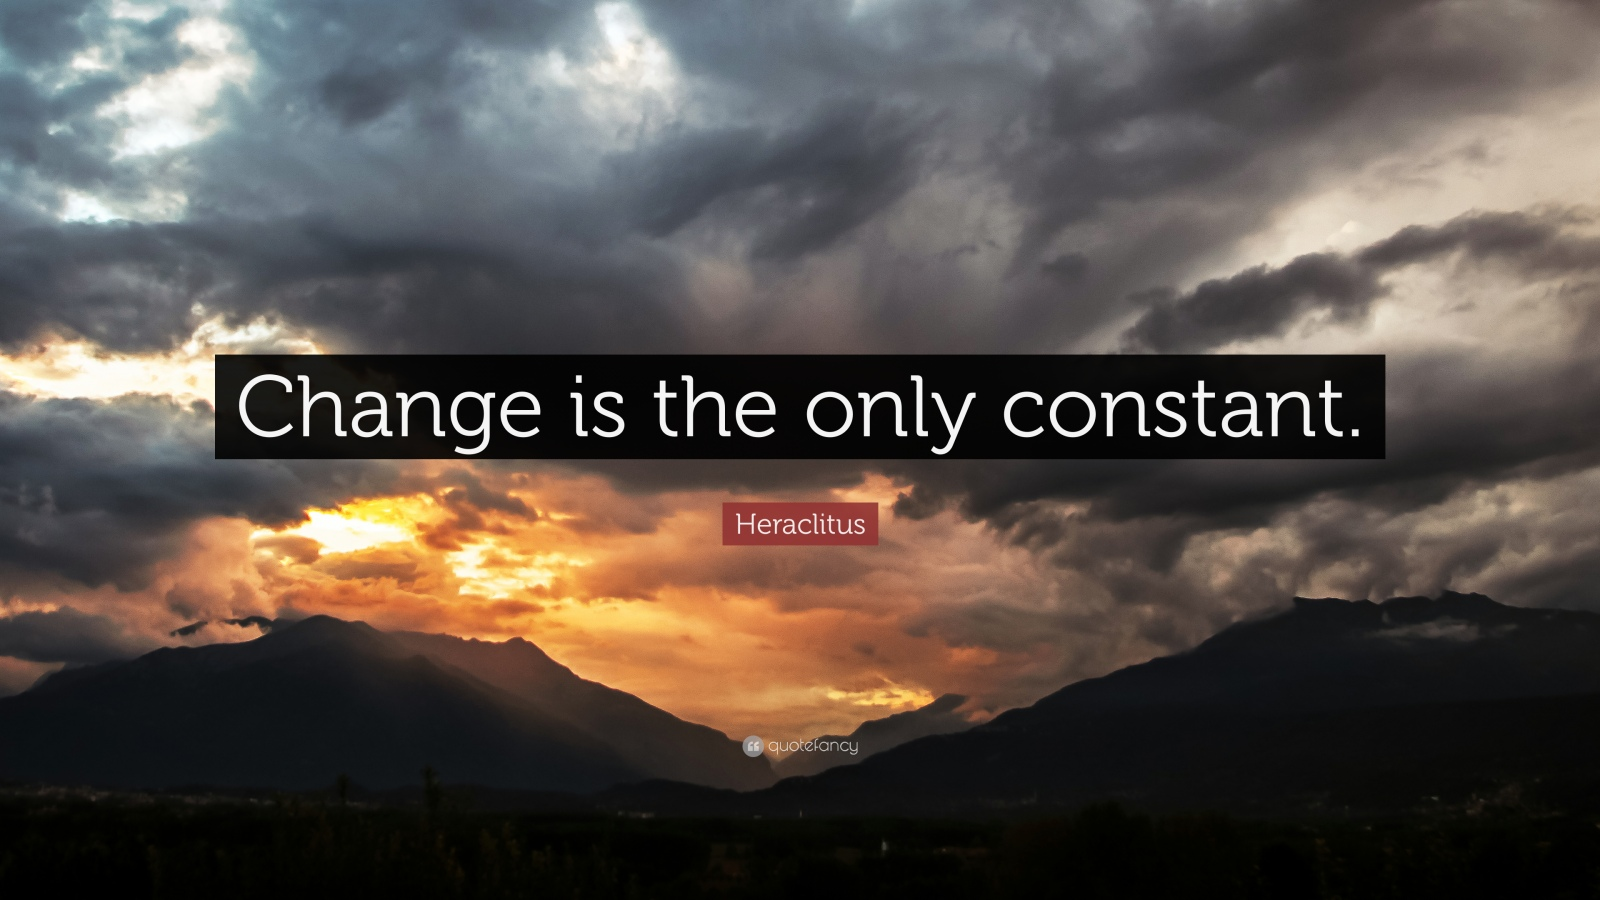 Change is the only constant in the world essay